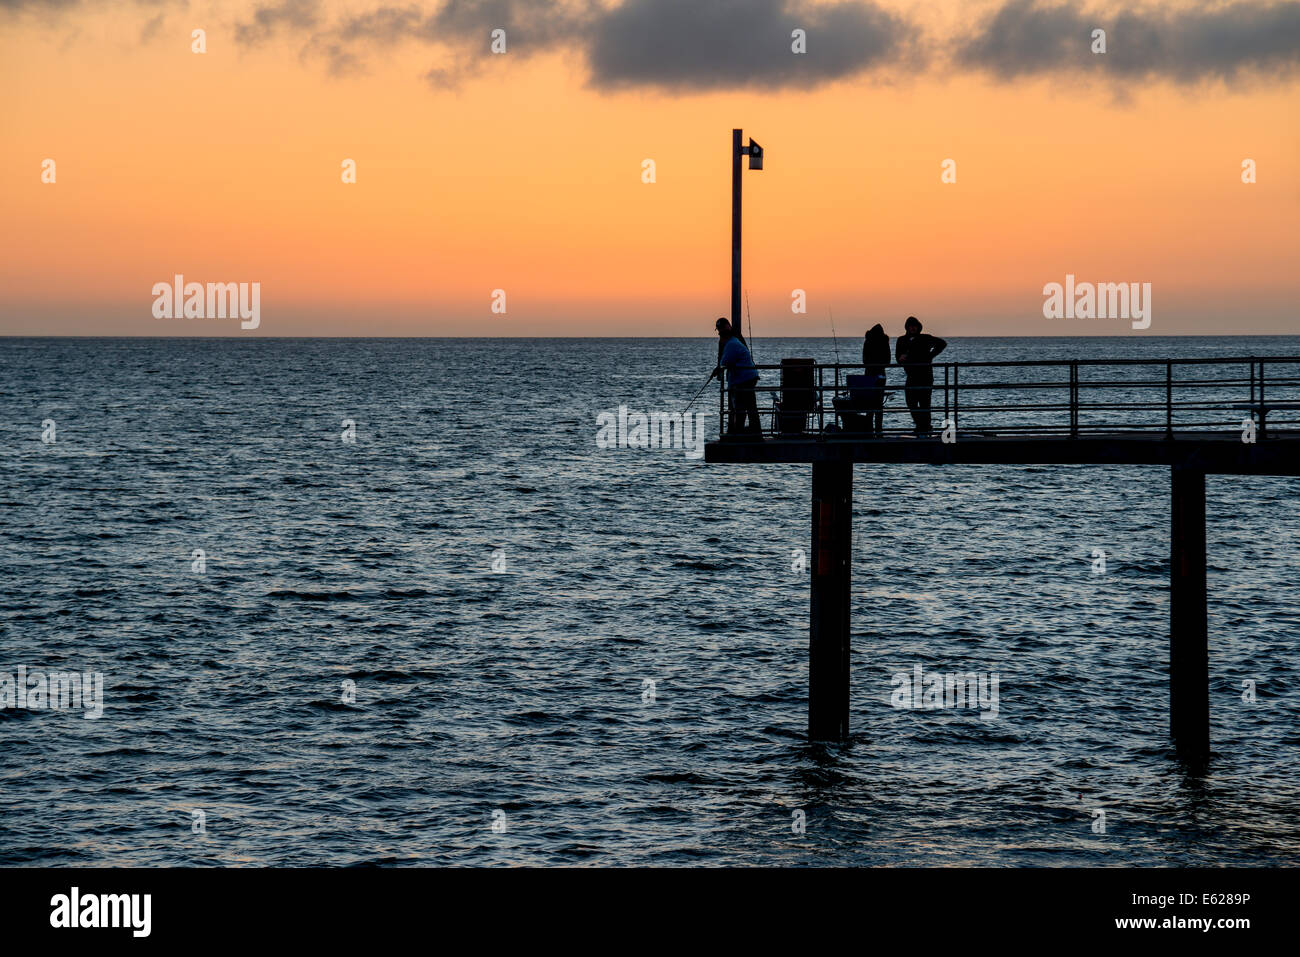 Fishermen on the pier are silhouetted against the sunset at Adelaide's Brighton beach, Australia - Stock Image